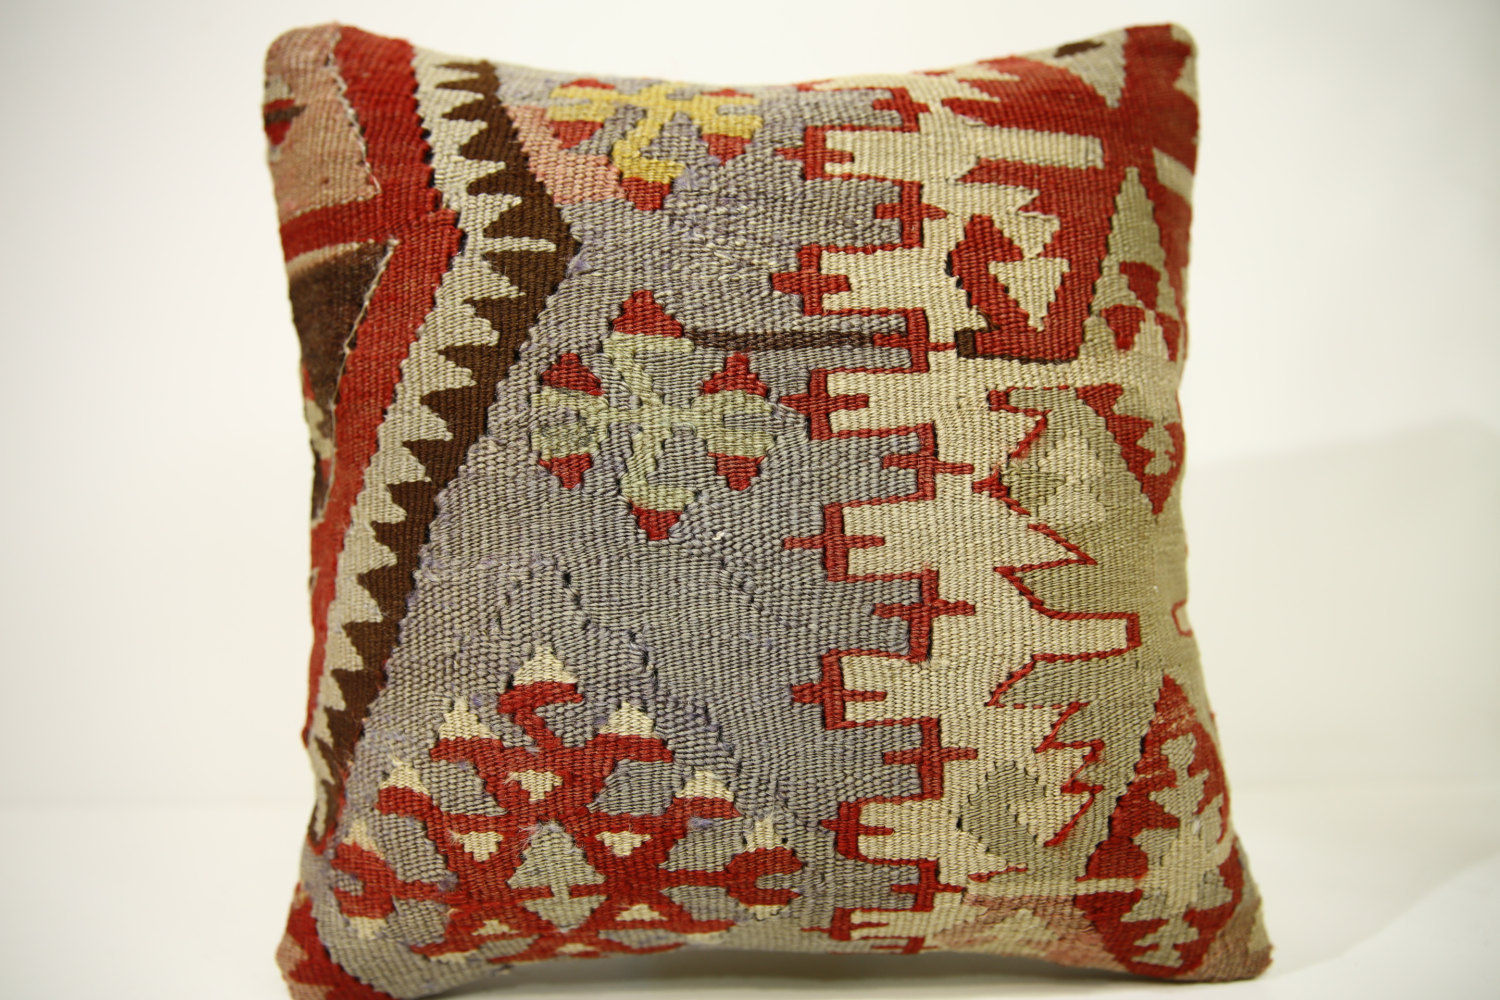 Kilim Pillows | 14x14 | Kelim pillows | 1410 | Turkish pillows , Kilim cushion